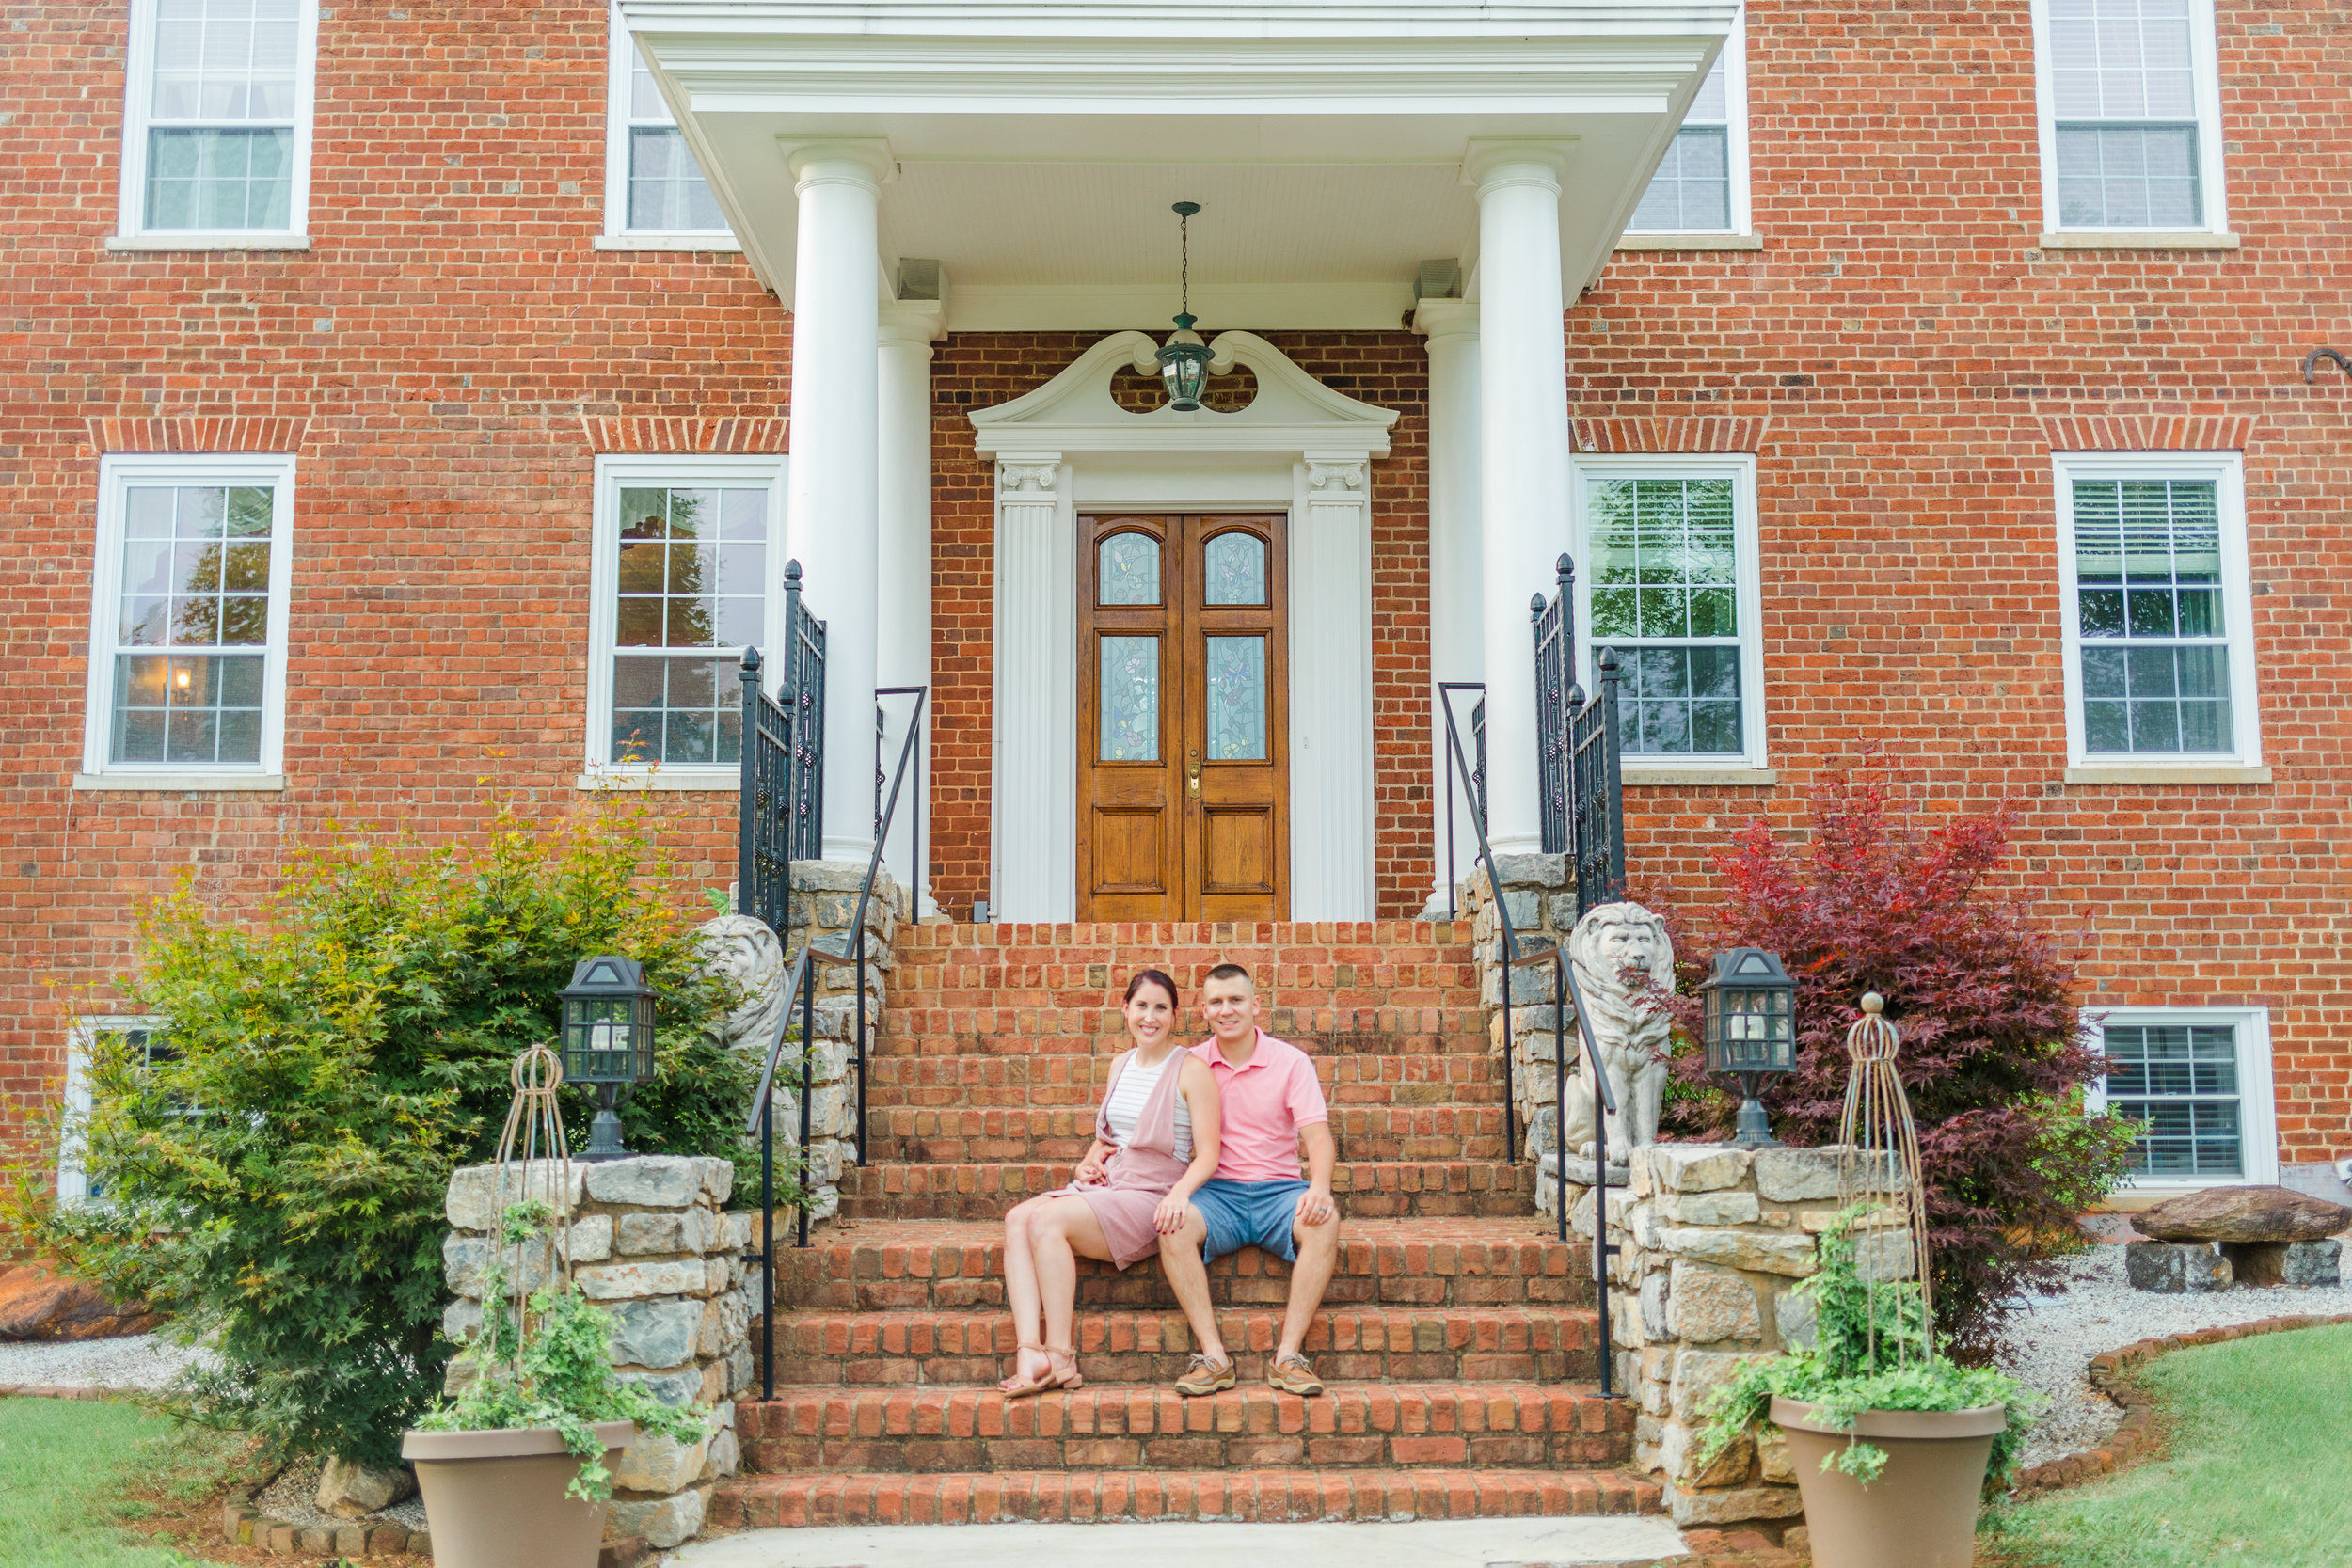 Isabelle and Jordan Russell owners of Belle Garden Estate